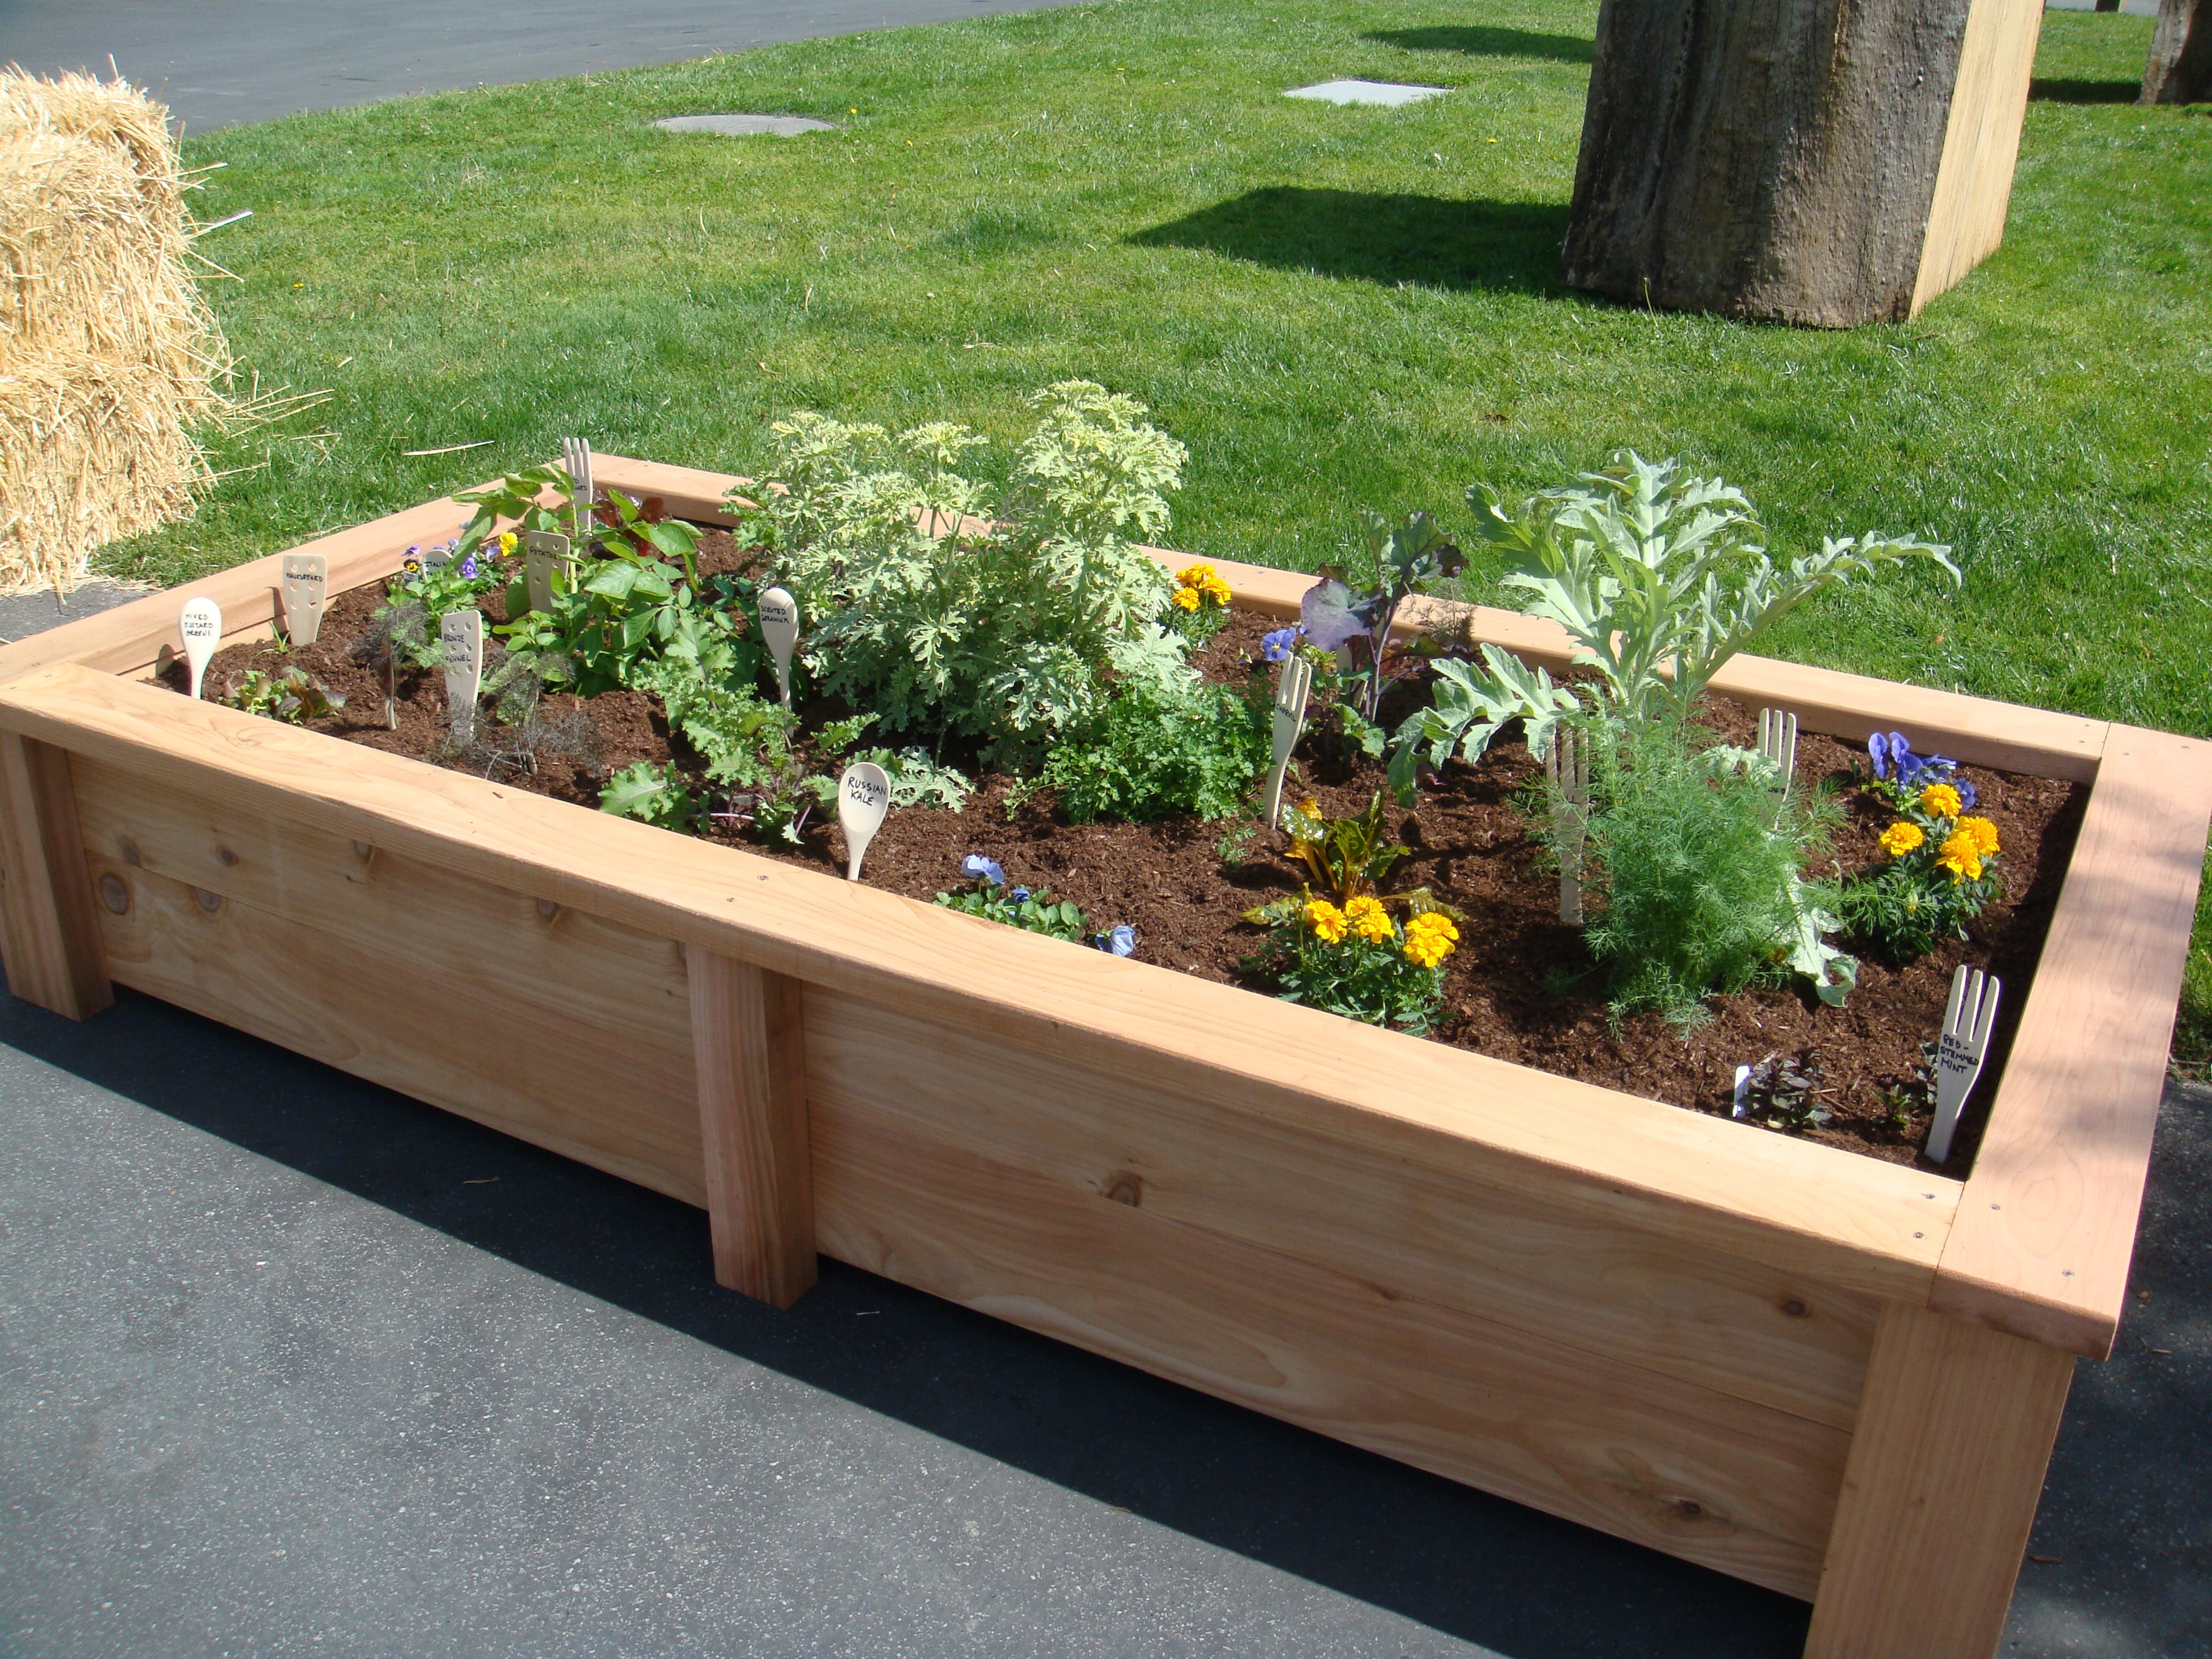 Building a raised flower bed – Wonderful Woodworking